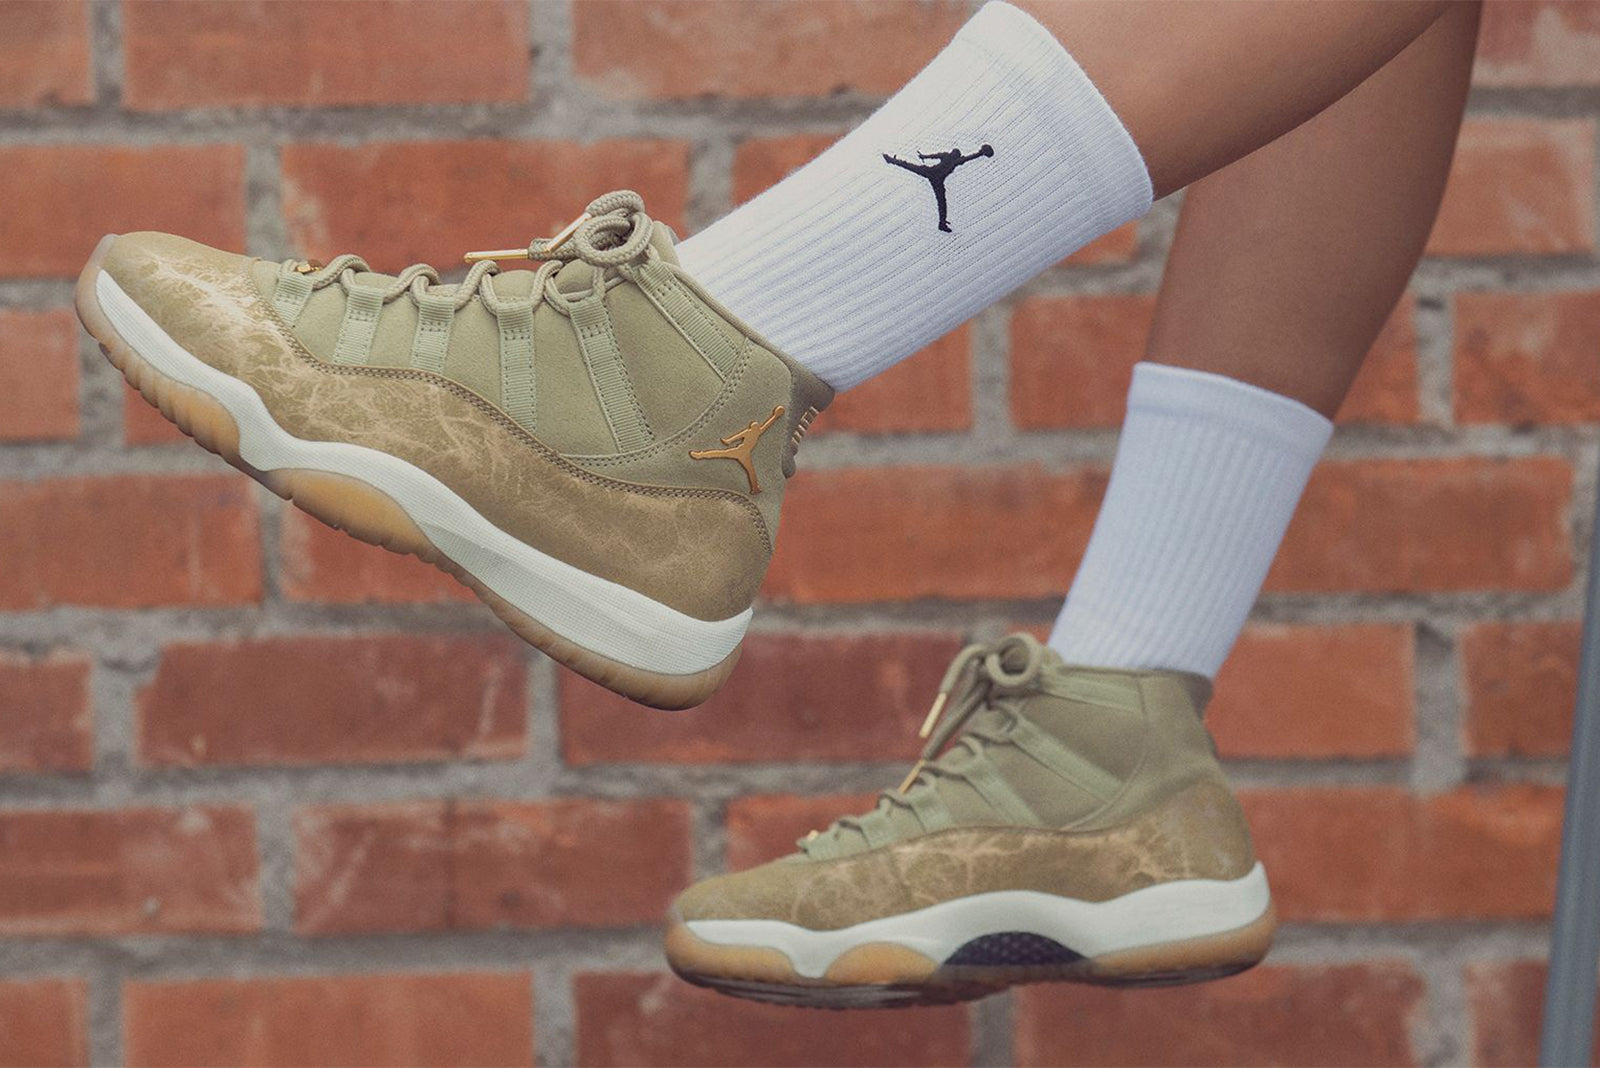 Next up Jordan drop the iconic Air Jordan 11  Heiress  following the  tradition of specialized holiday AJXIs for women b6fc983d6f